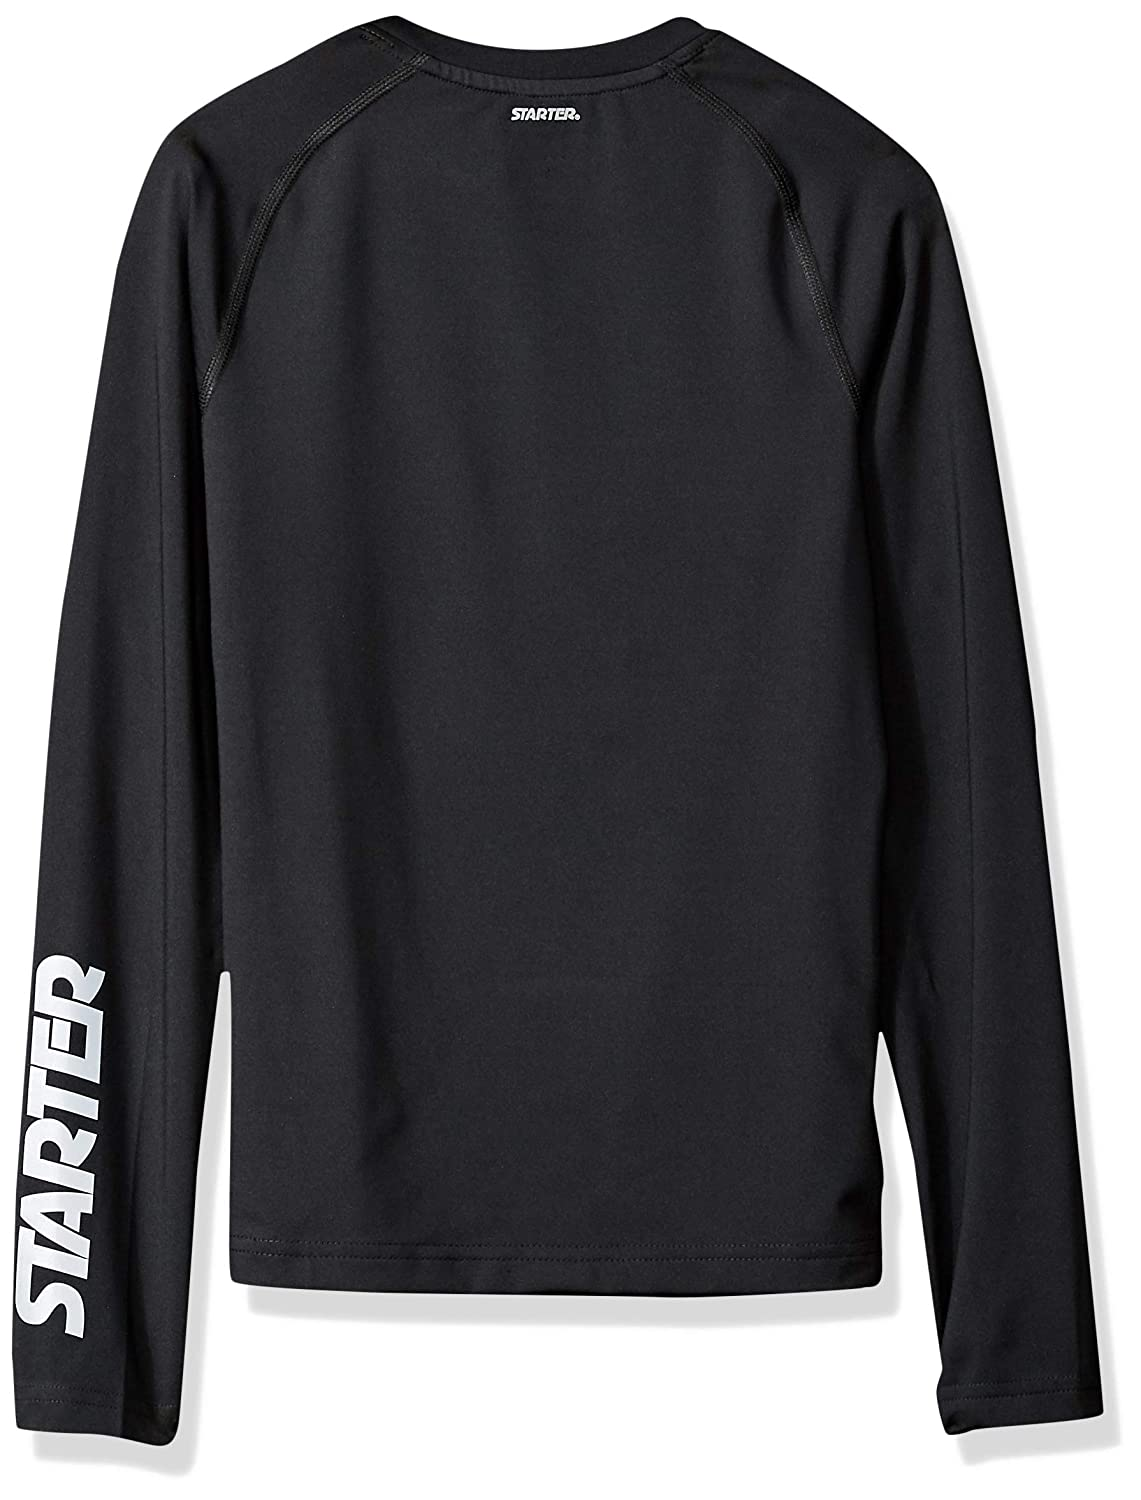 d768ce8d Amazon.com: Starter Boys' Long Sleeve Logo Light-Compression Athletic T- Shirt, Amazon Exclusive: Clothing